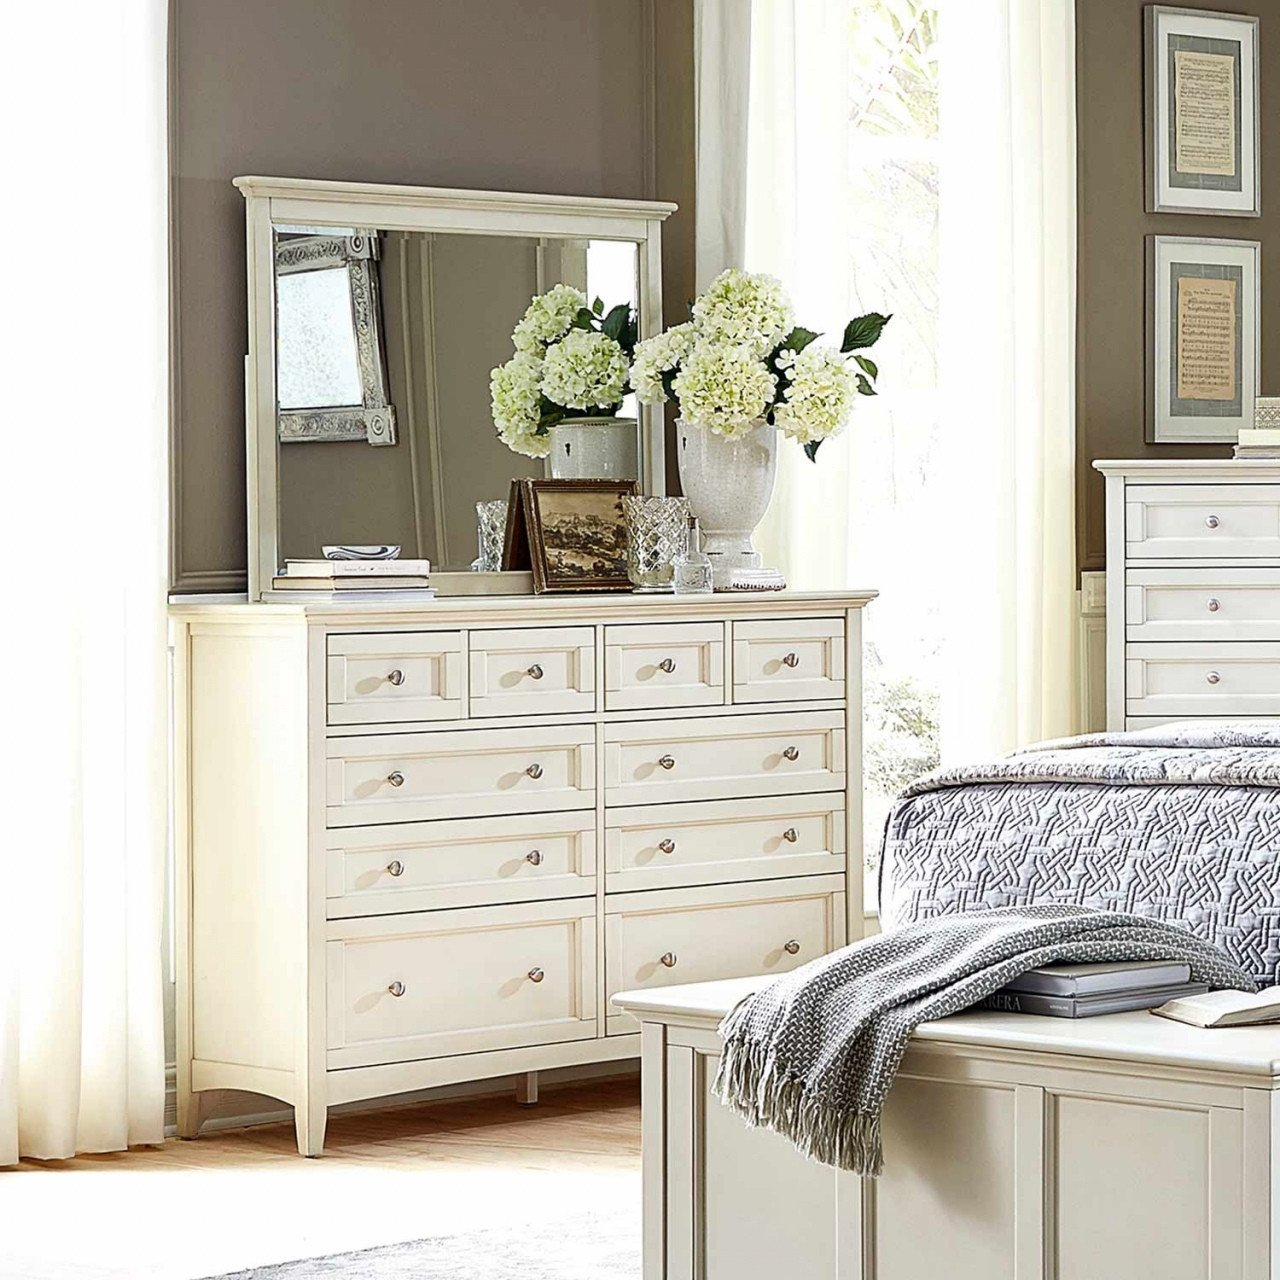 Bedroom Vanity with Drawers Elegant Antique Dresser with Mirror — Procura Home Blog